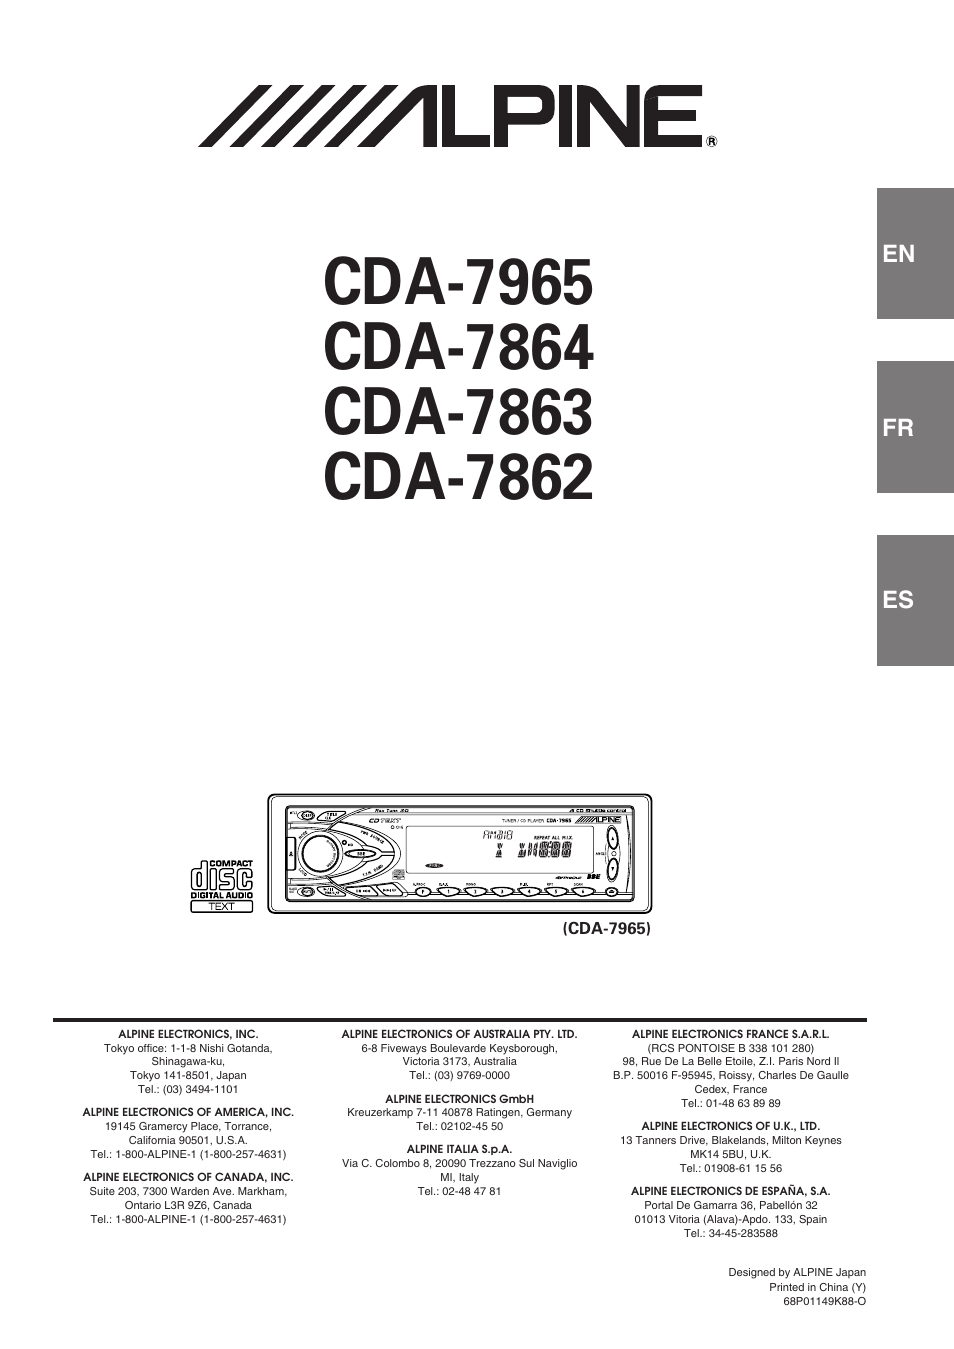 Roissy Charles De Gaulle Cedex Fr Alpine Cda-7863 User Manual | 28 Pages | Also For: Cda